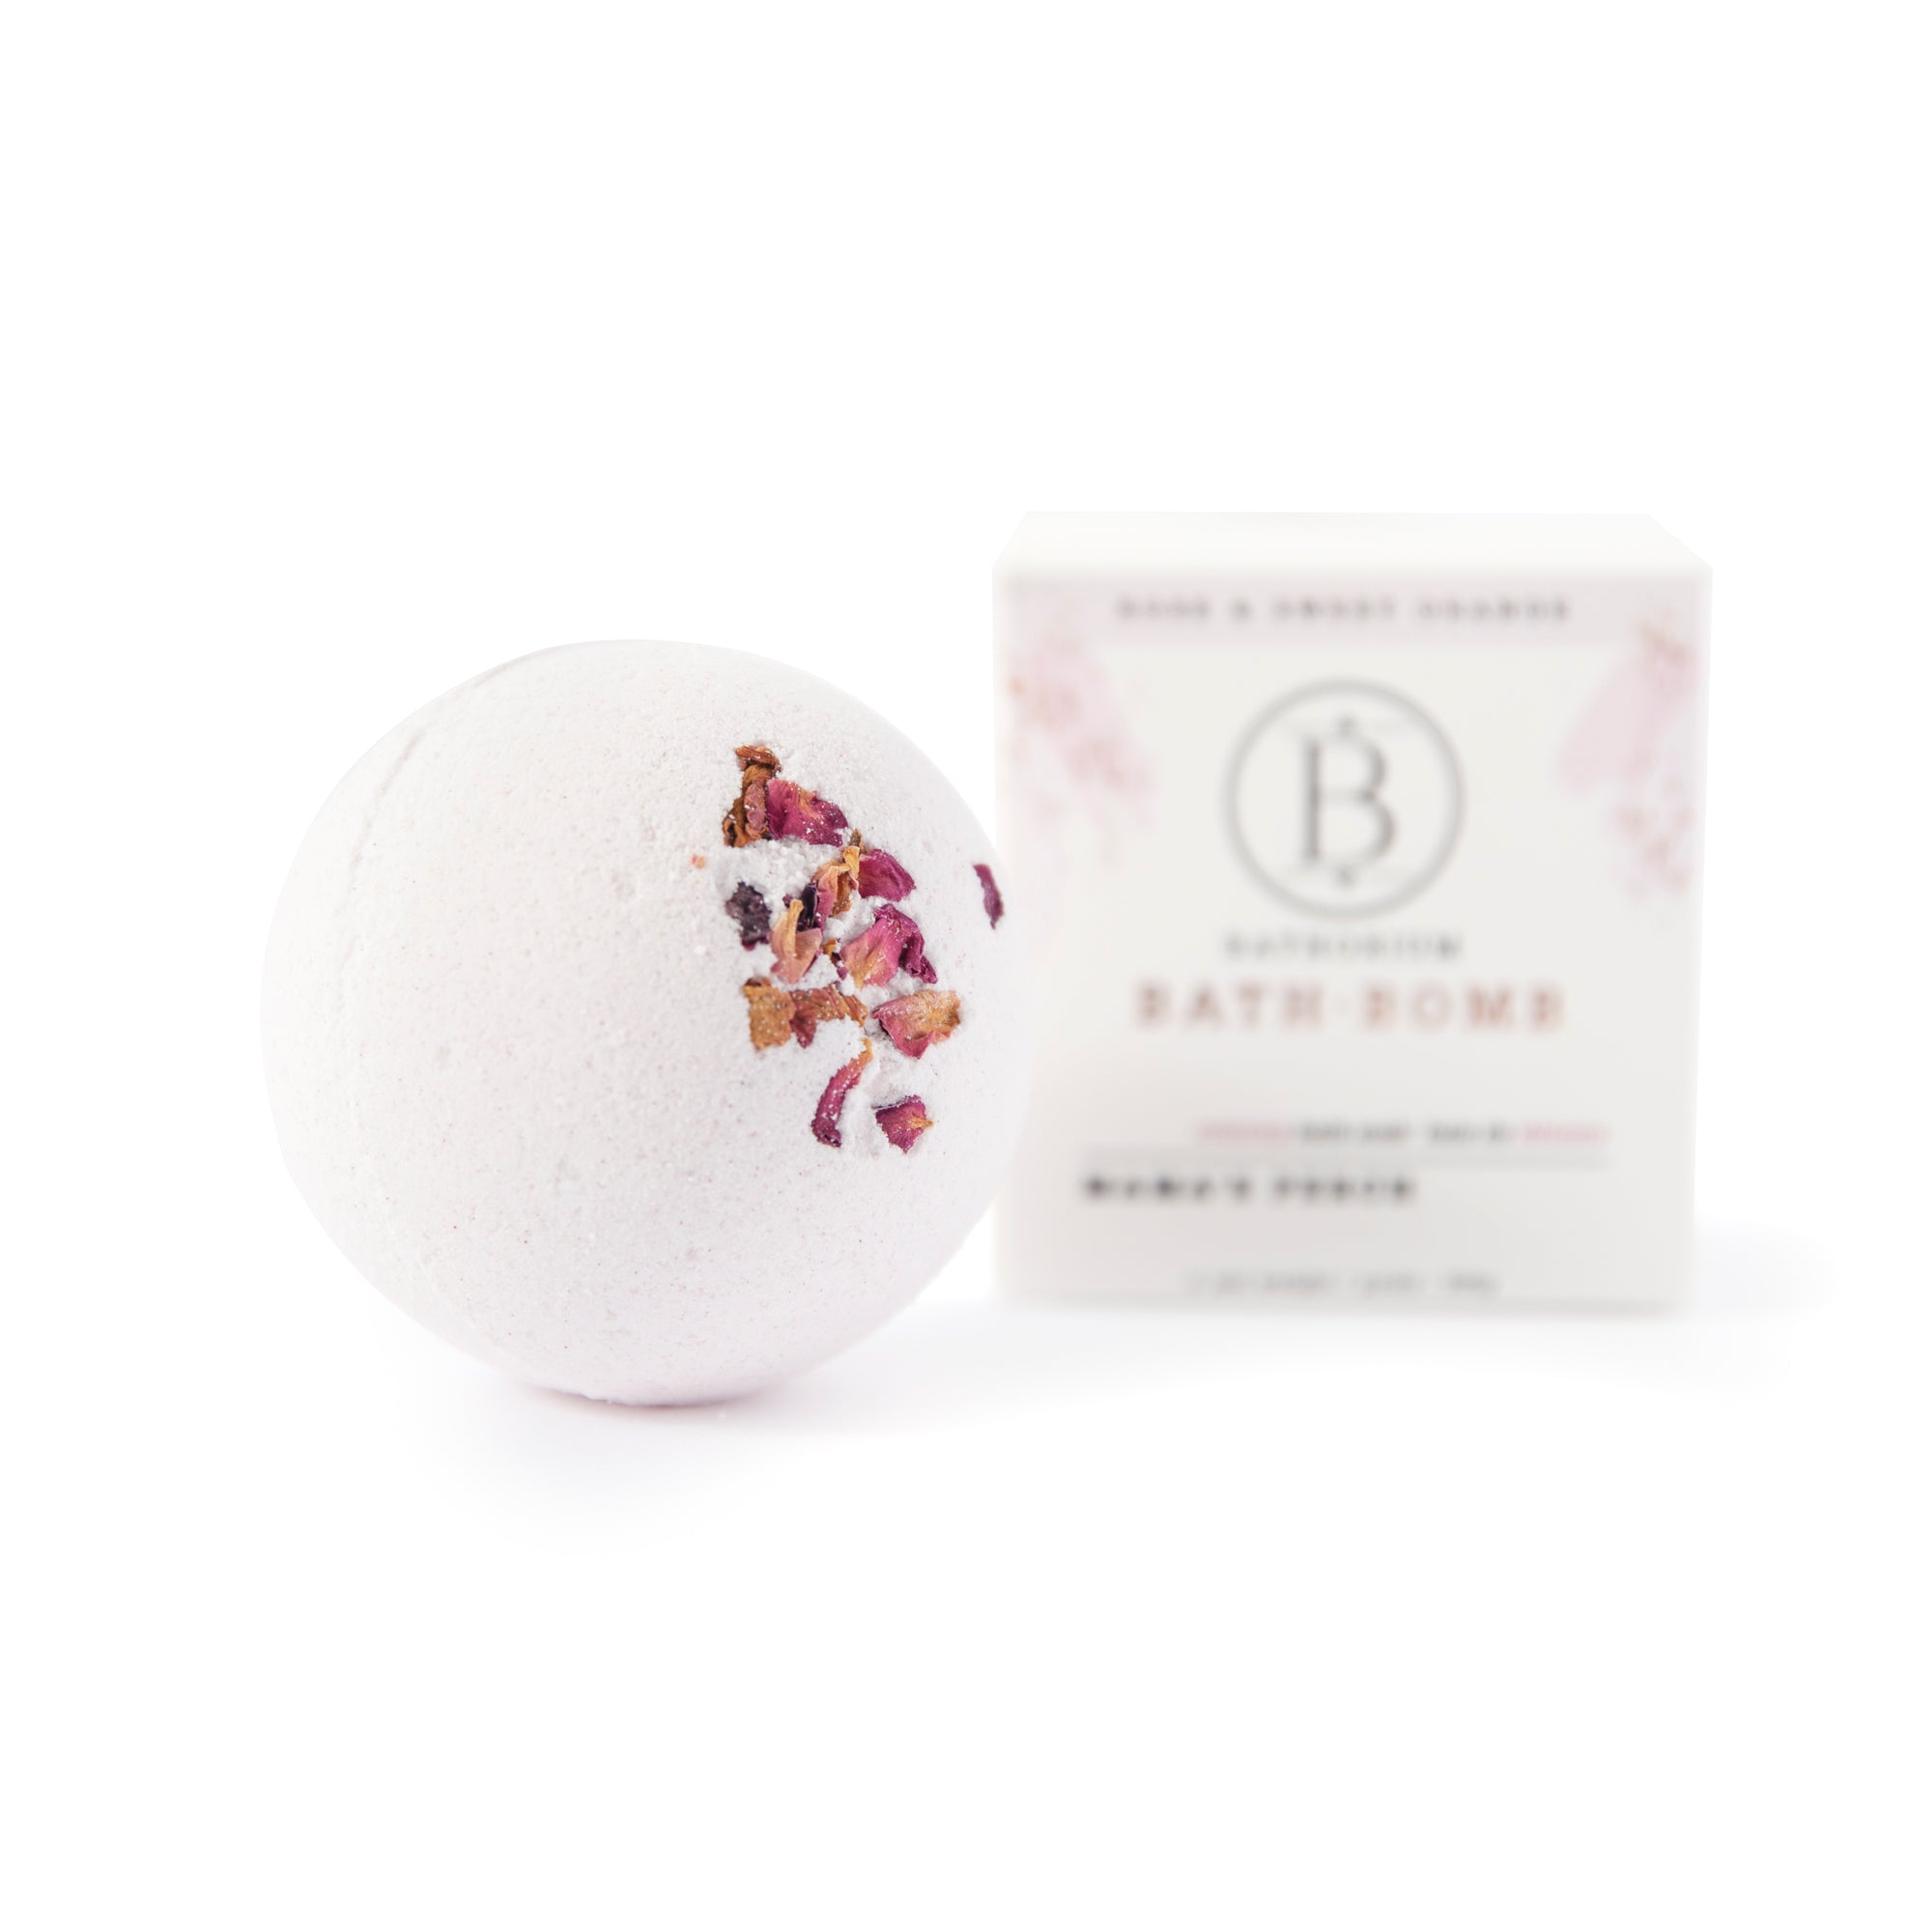 Mama's Perch Bath Bomb